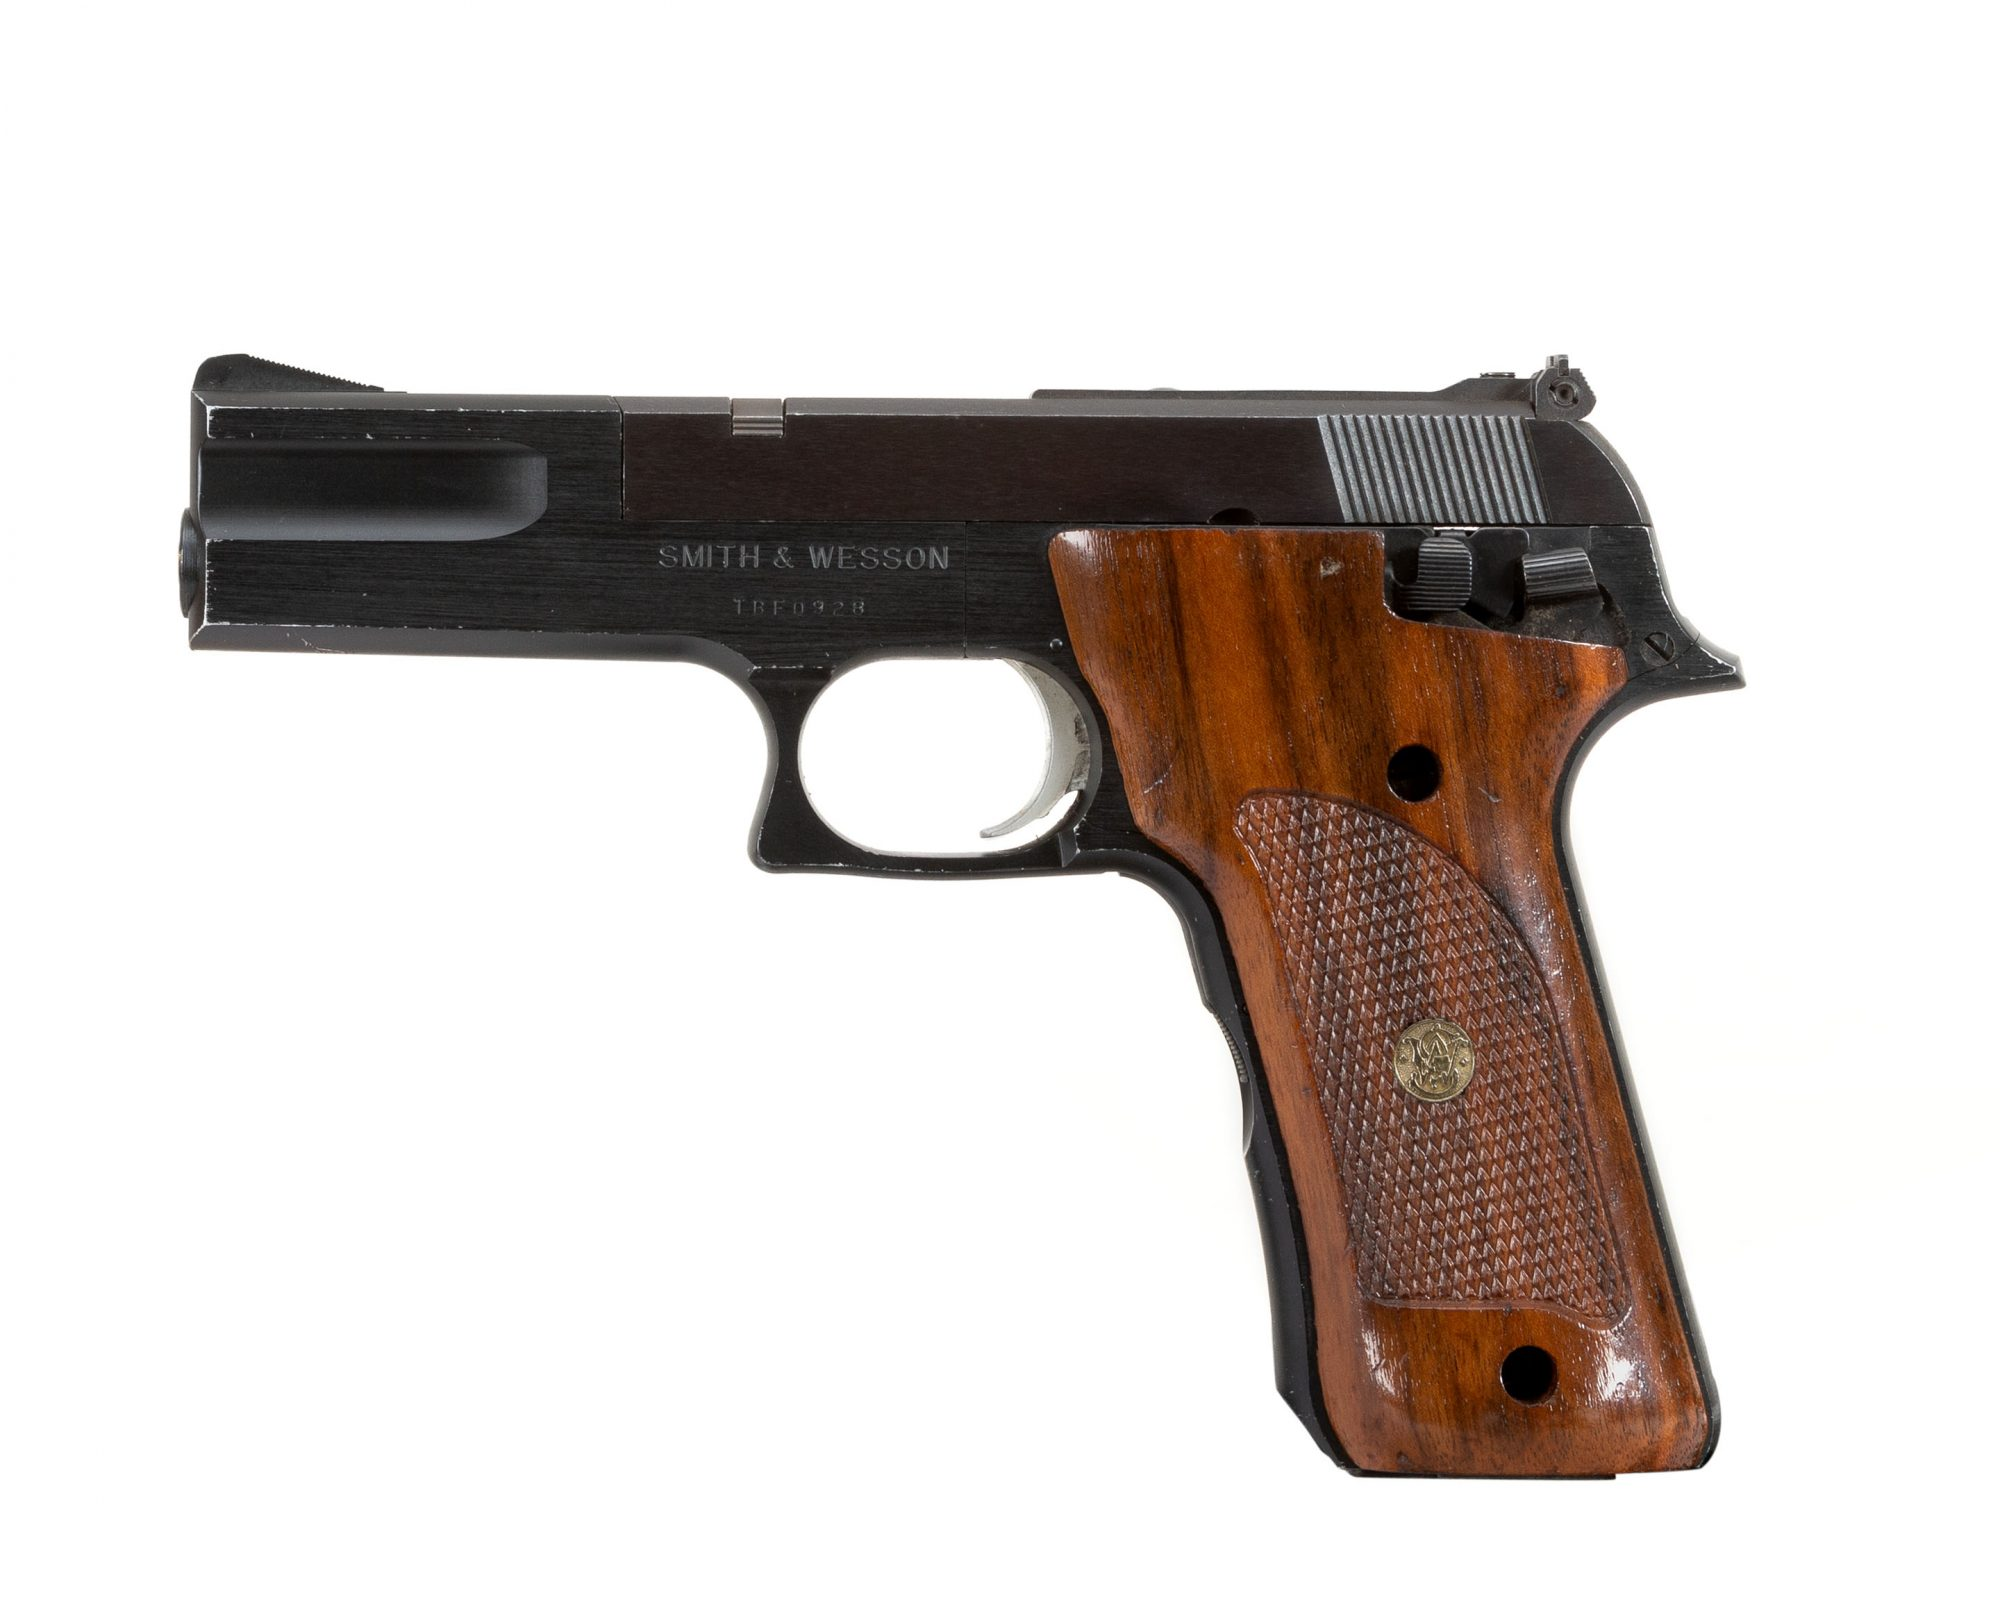 Photo of a pre-owned Smith & Wesson Model 422, for sale by Turnbull Restoration of Bloomfield, NY